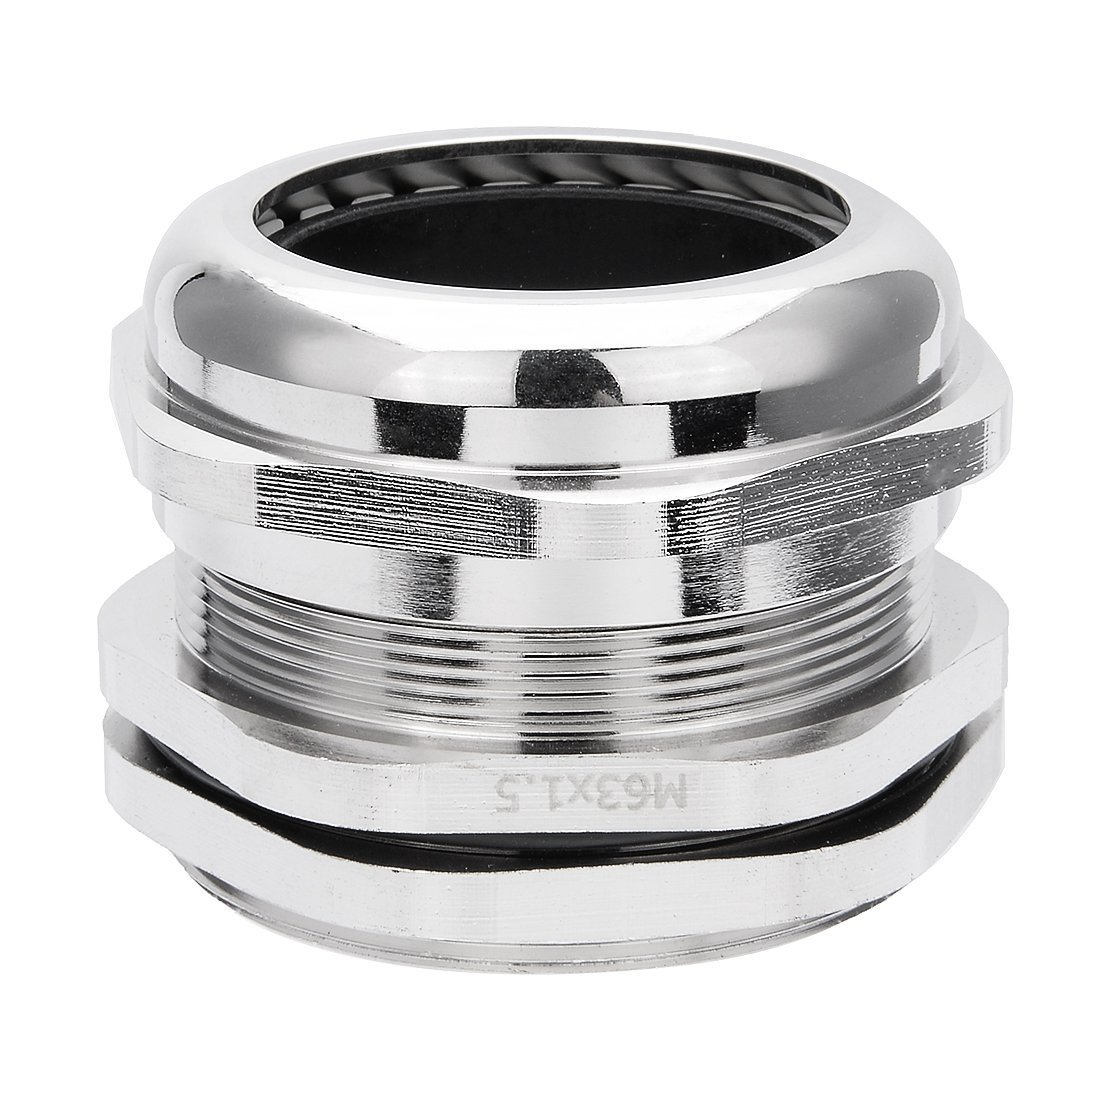 sourcingmap Cable Gland M40 Metal Waterproof Cable Glands Joints Adjustable Connector for 22-30mm Dia Wire Range